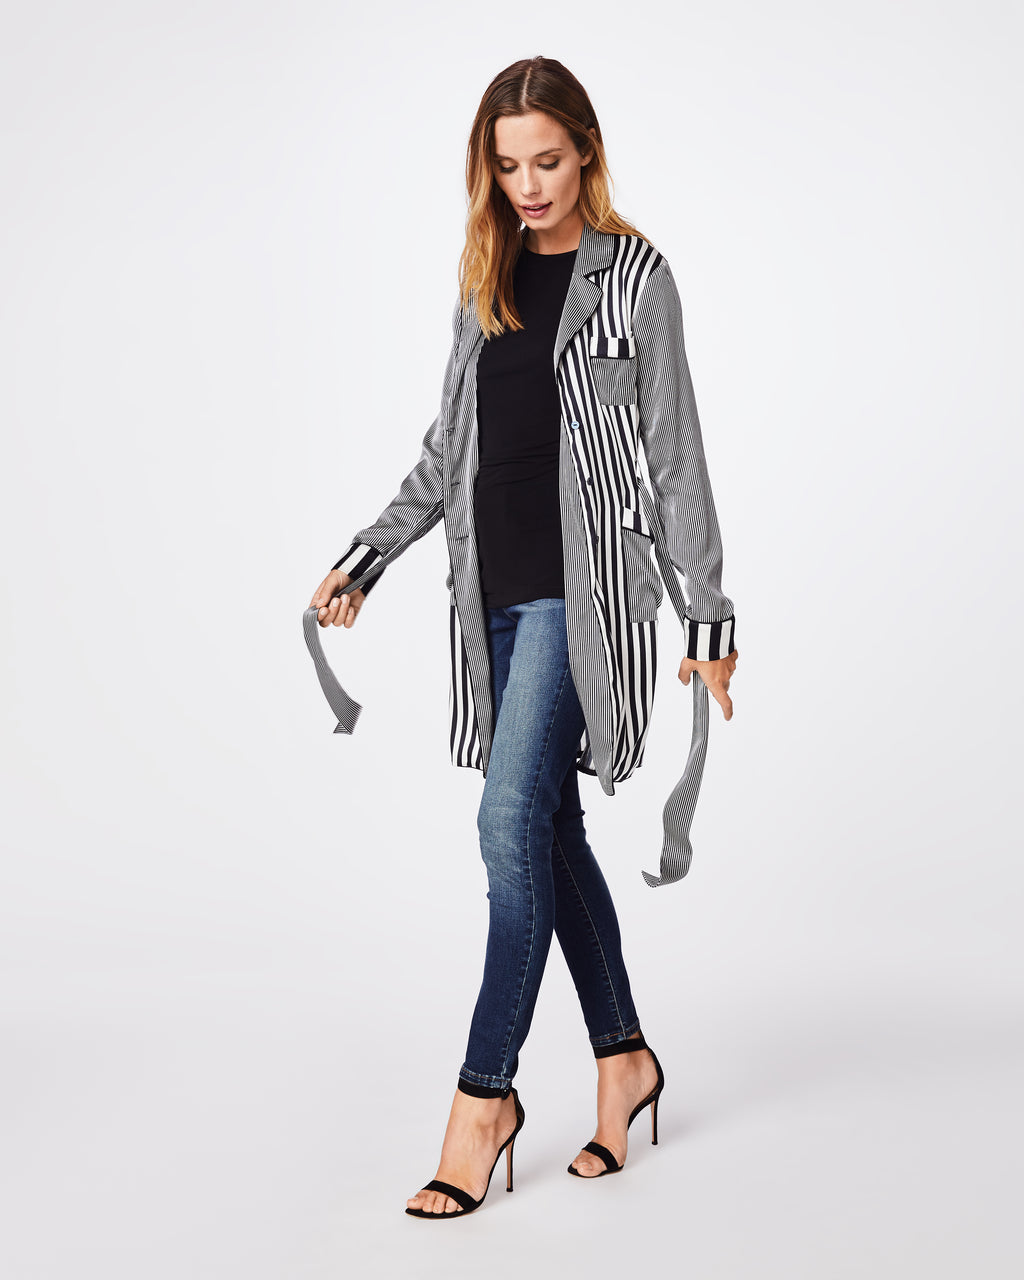 BK10278 - PAJAMA STRIPE ROBE - outerwear - jackets - Need a light cover up? We have you covered. This silky robe is the perfect layering piece. Wear it open or tie it up.